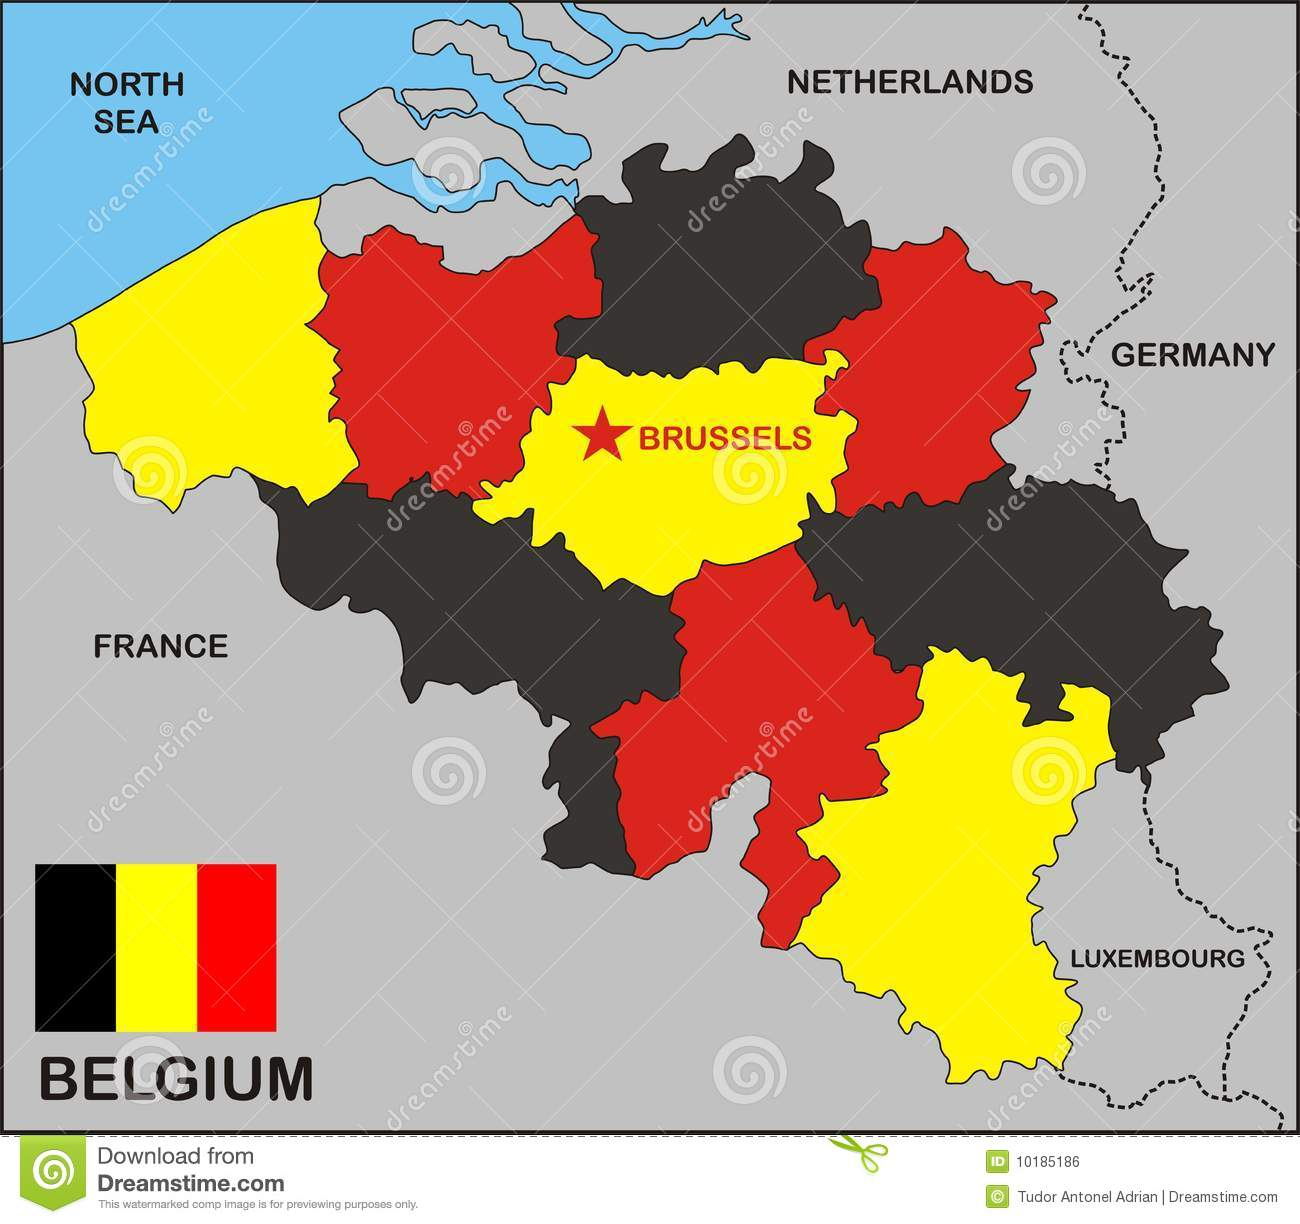 Talleyrand partition plan for Belgium